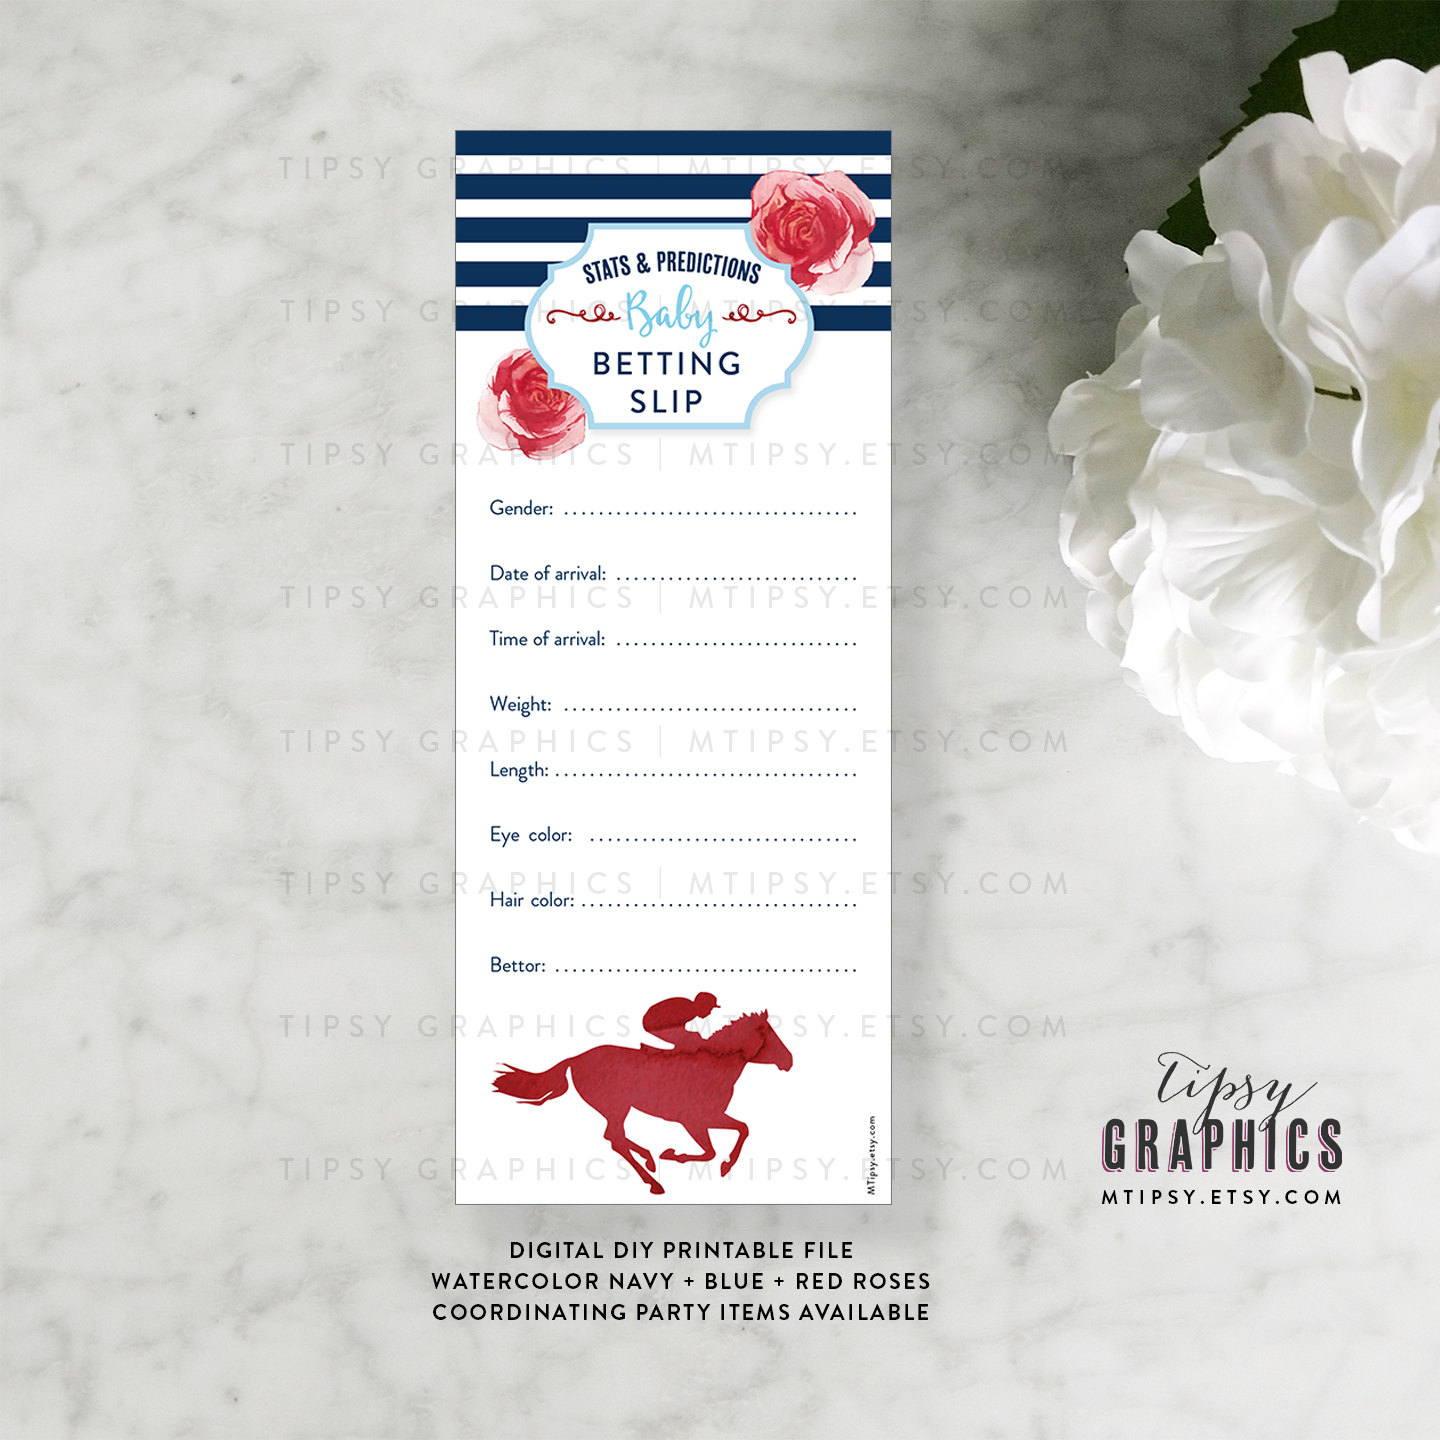 Derby Baby Betting Slip Stats & Predictions Kentucky Derby